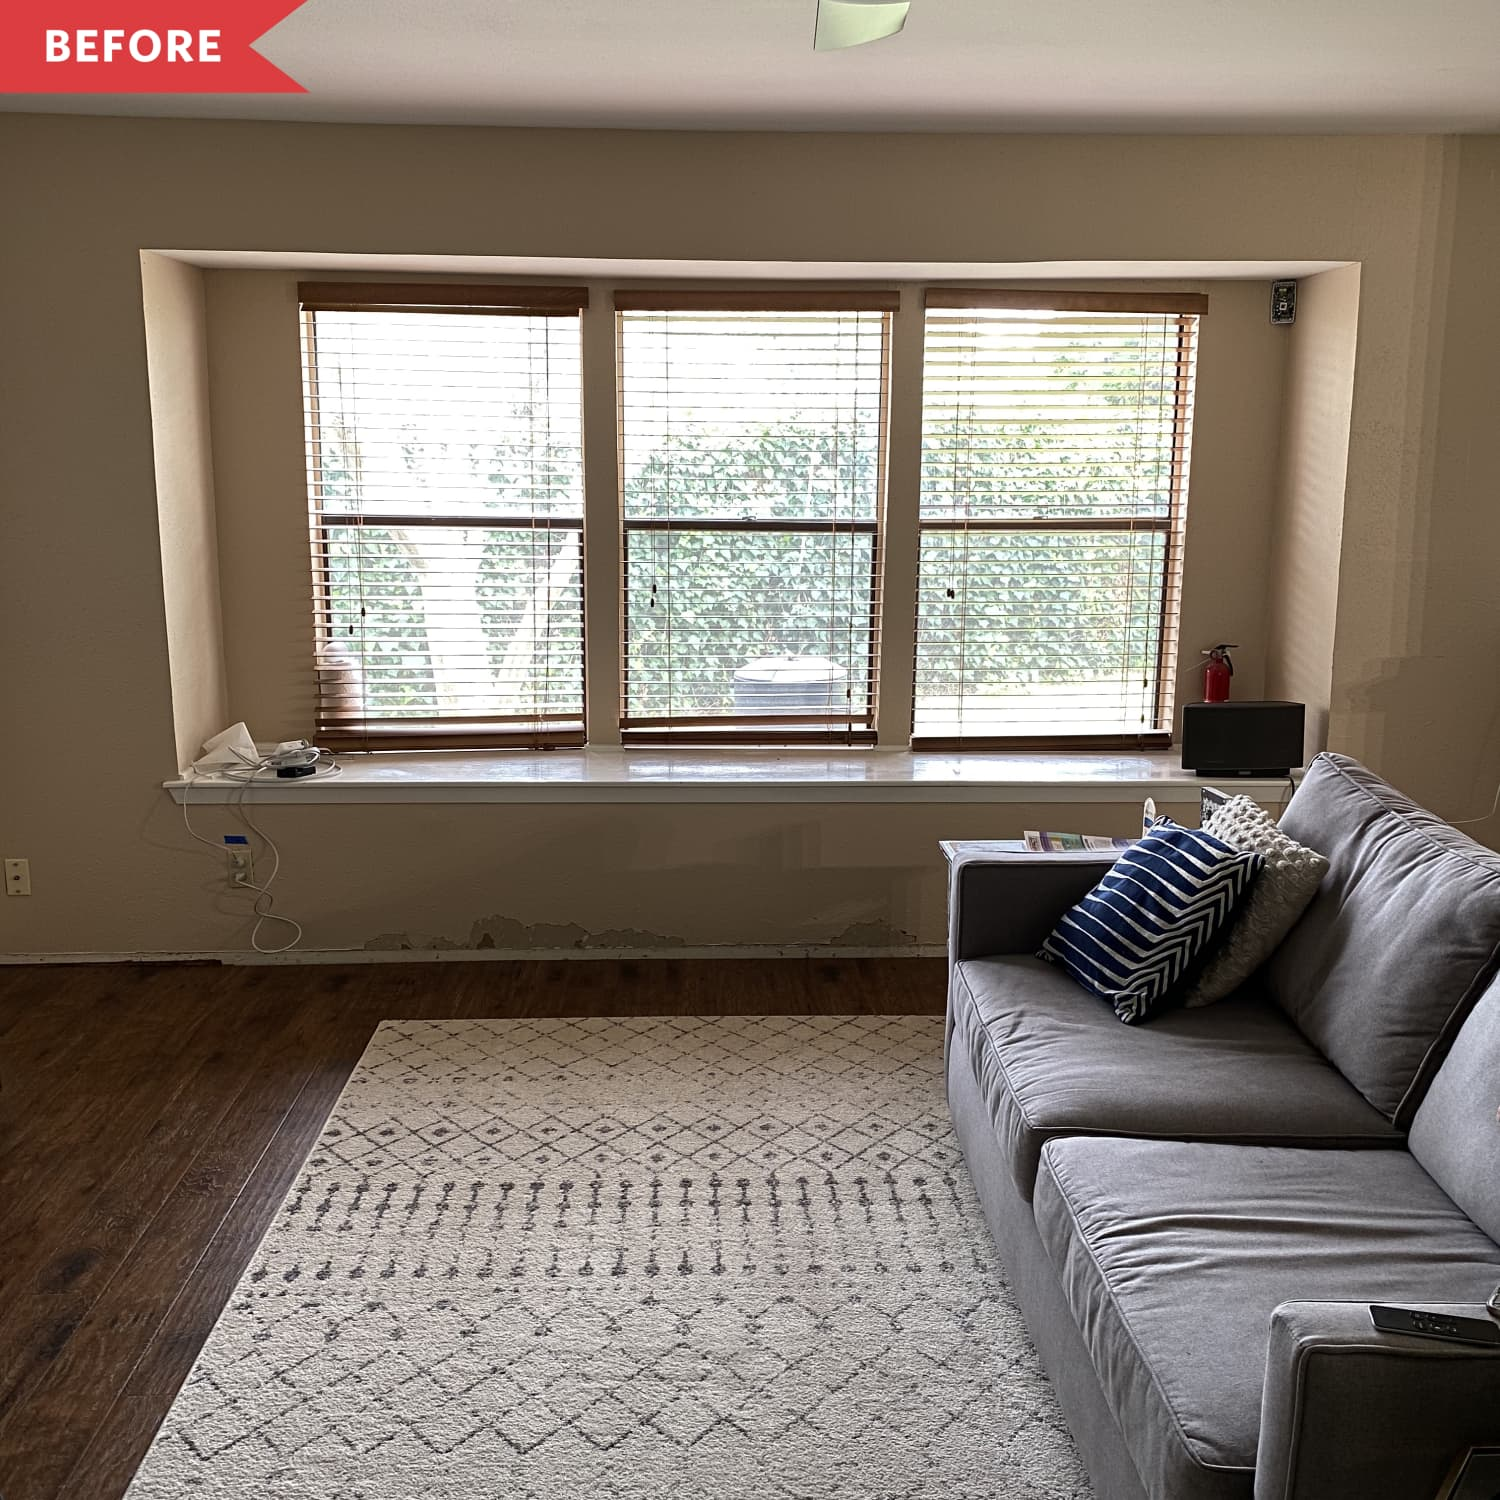 best-budget-room-redos-of-2020-best-budget-before-and-afters